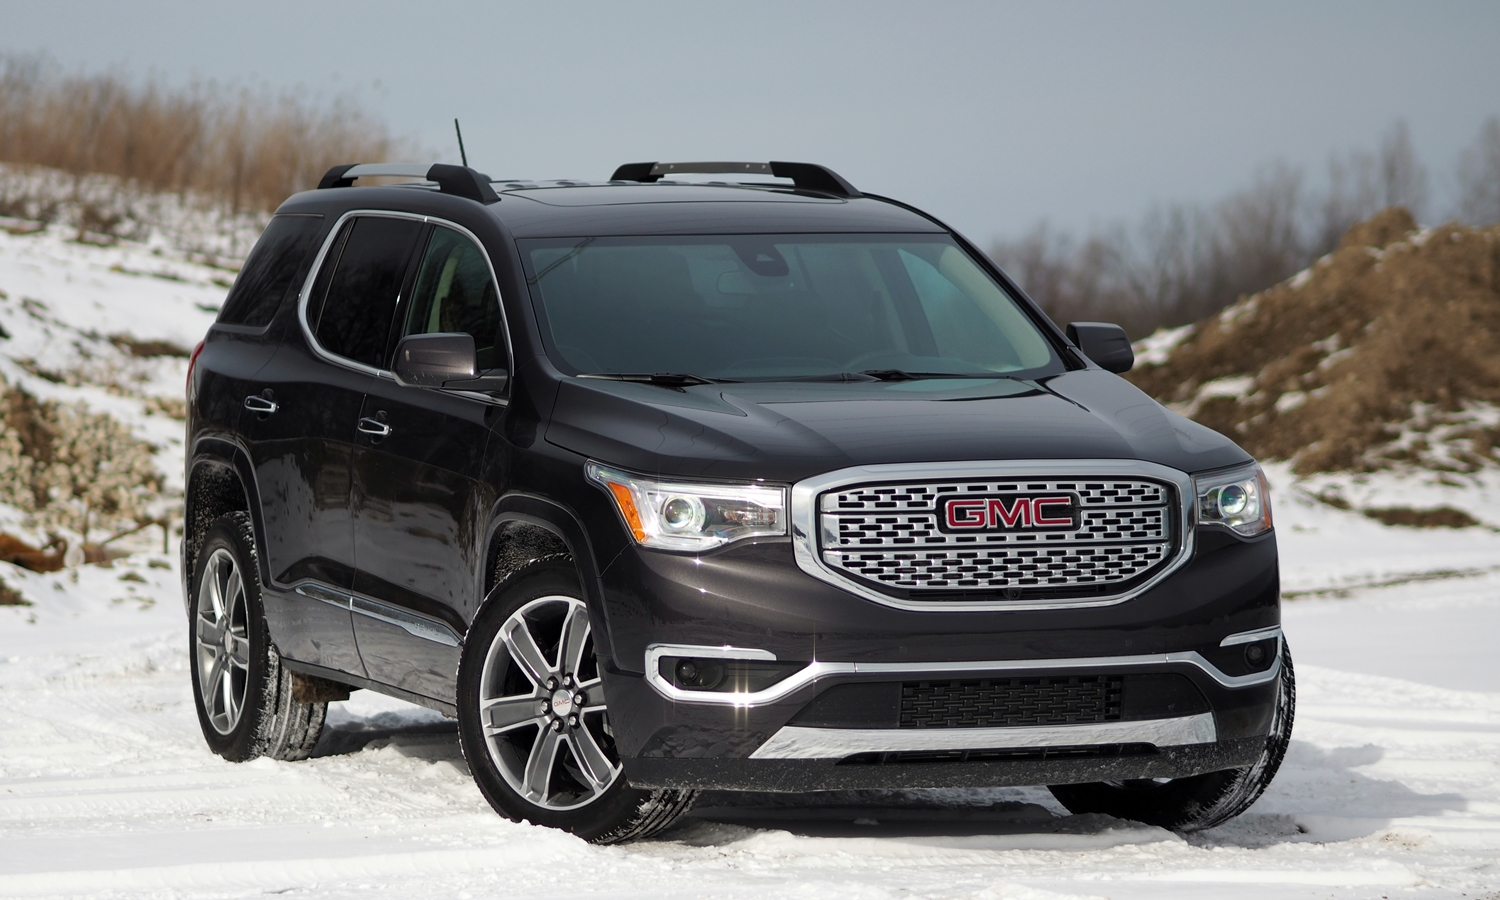 GMC Acadia Photos: 2017 GMC Acadia front quarter high view